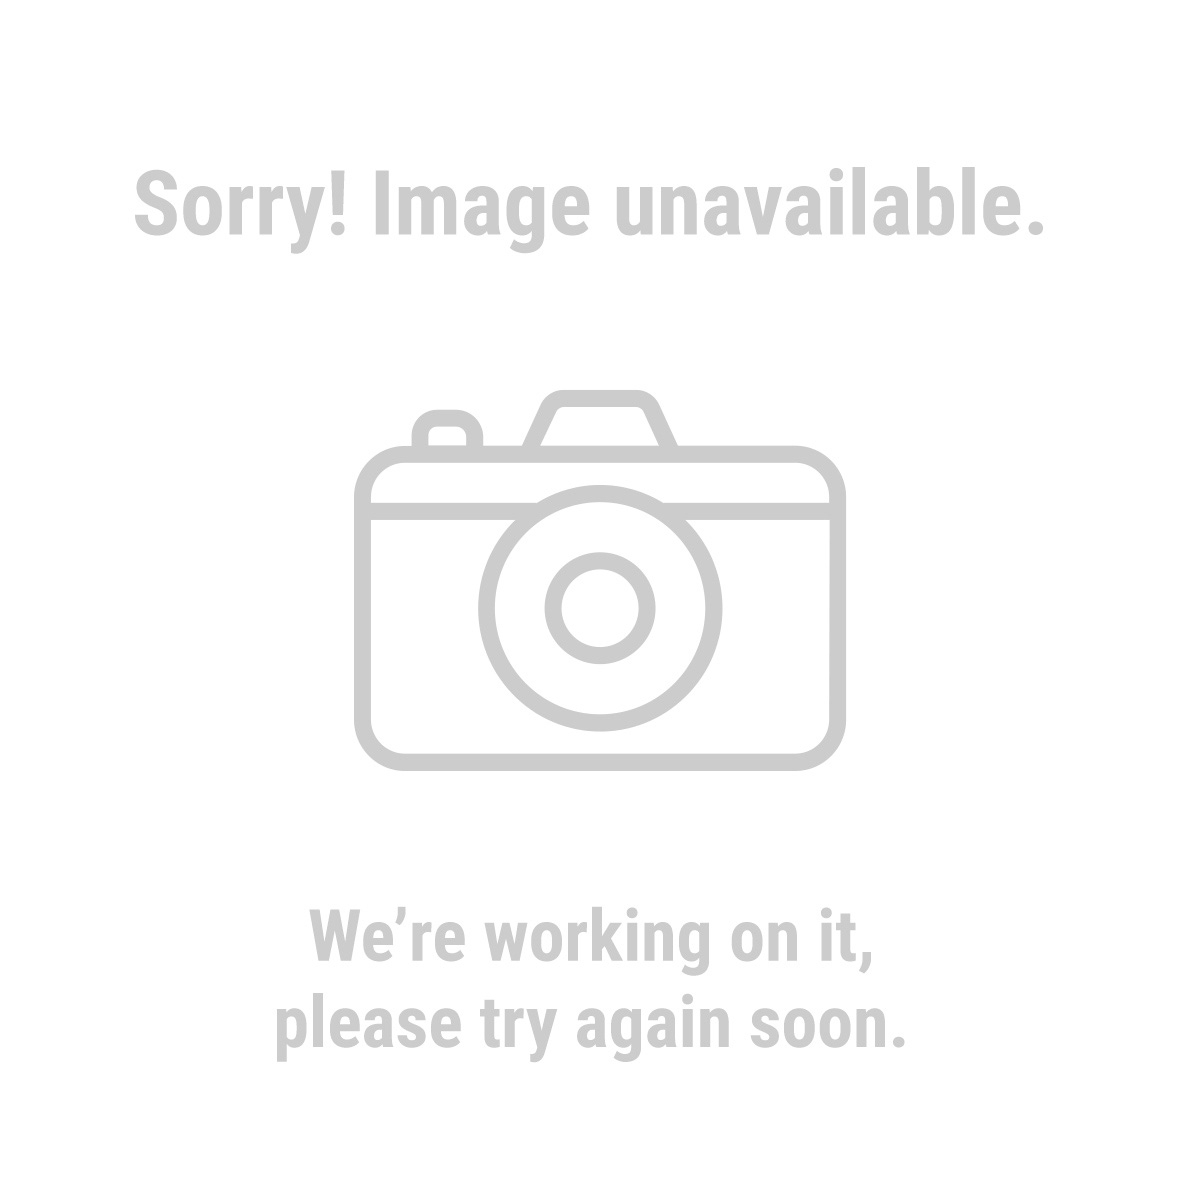 Admiral 62741 12 in. 60T Finishing Circular Saw Blade